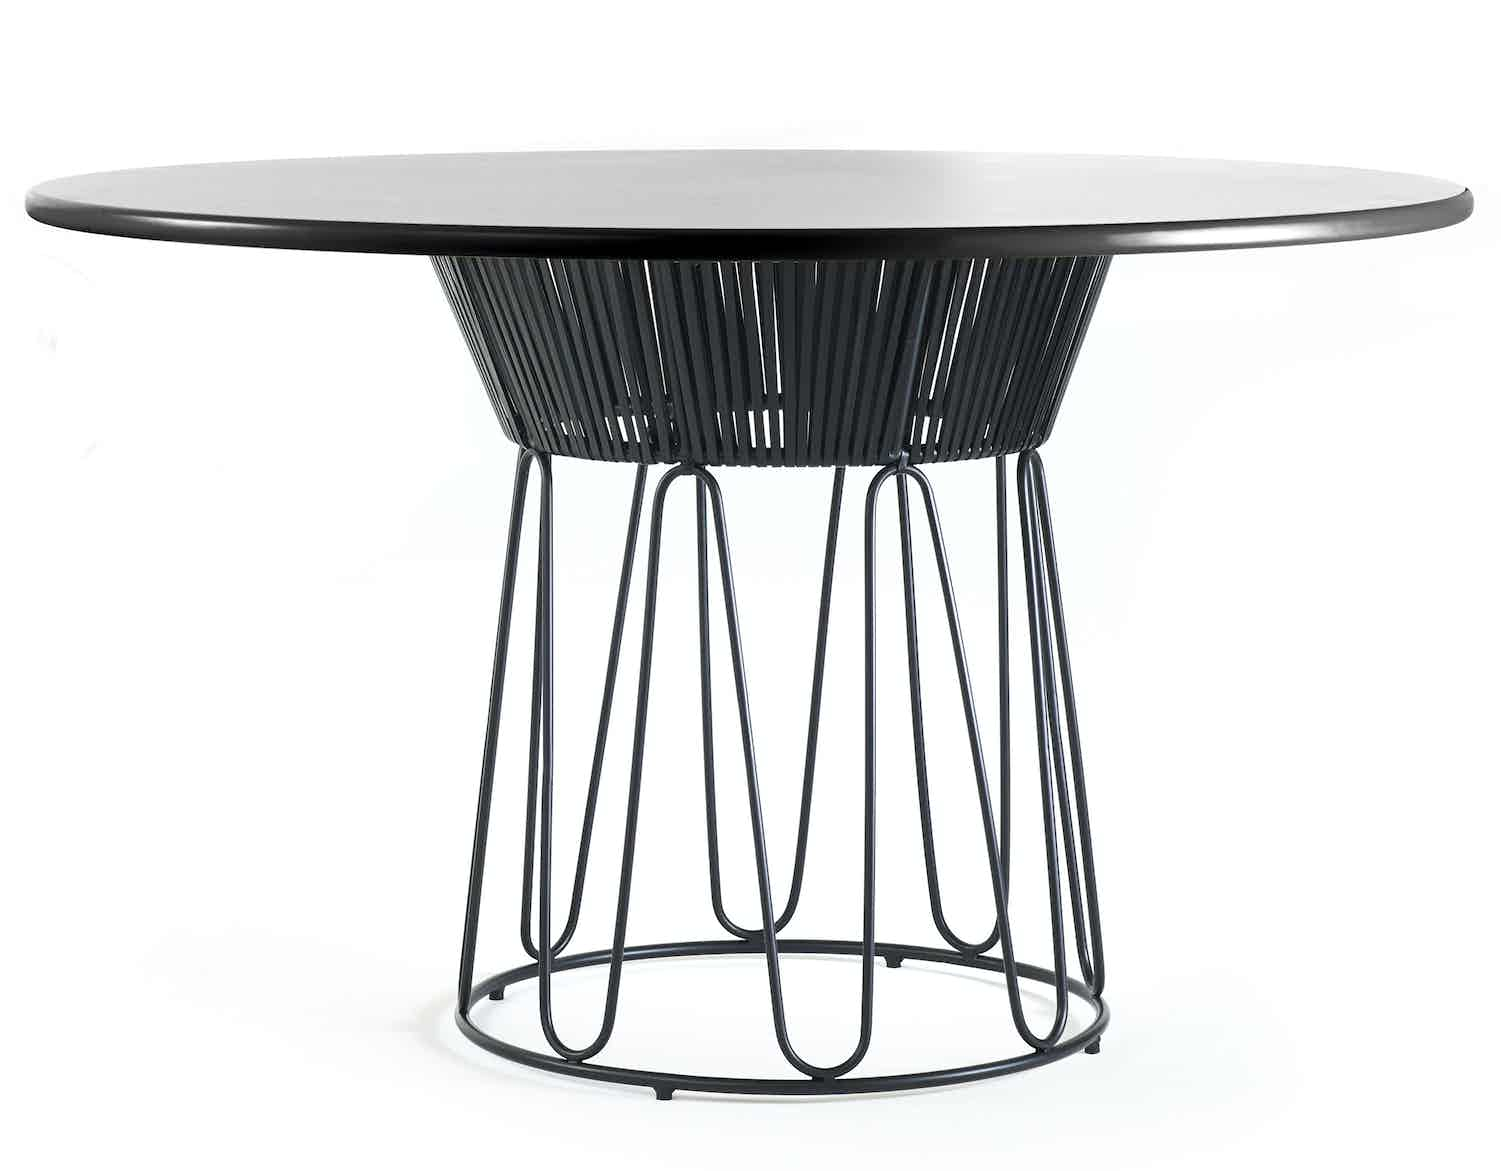 Ames furniture circo dining table black haute living